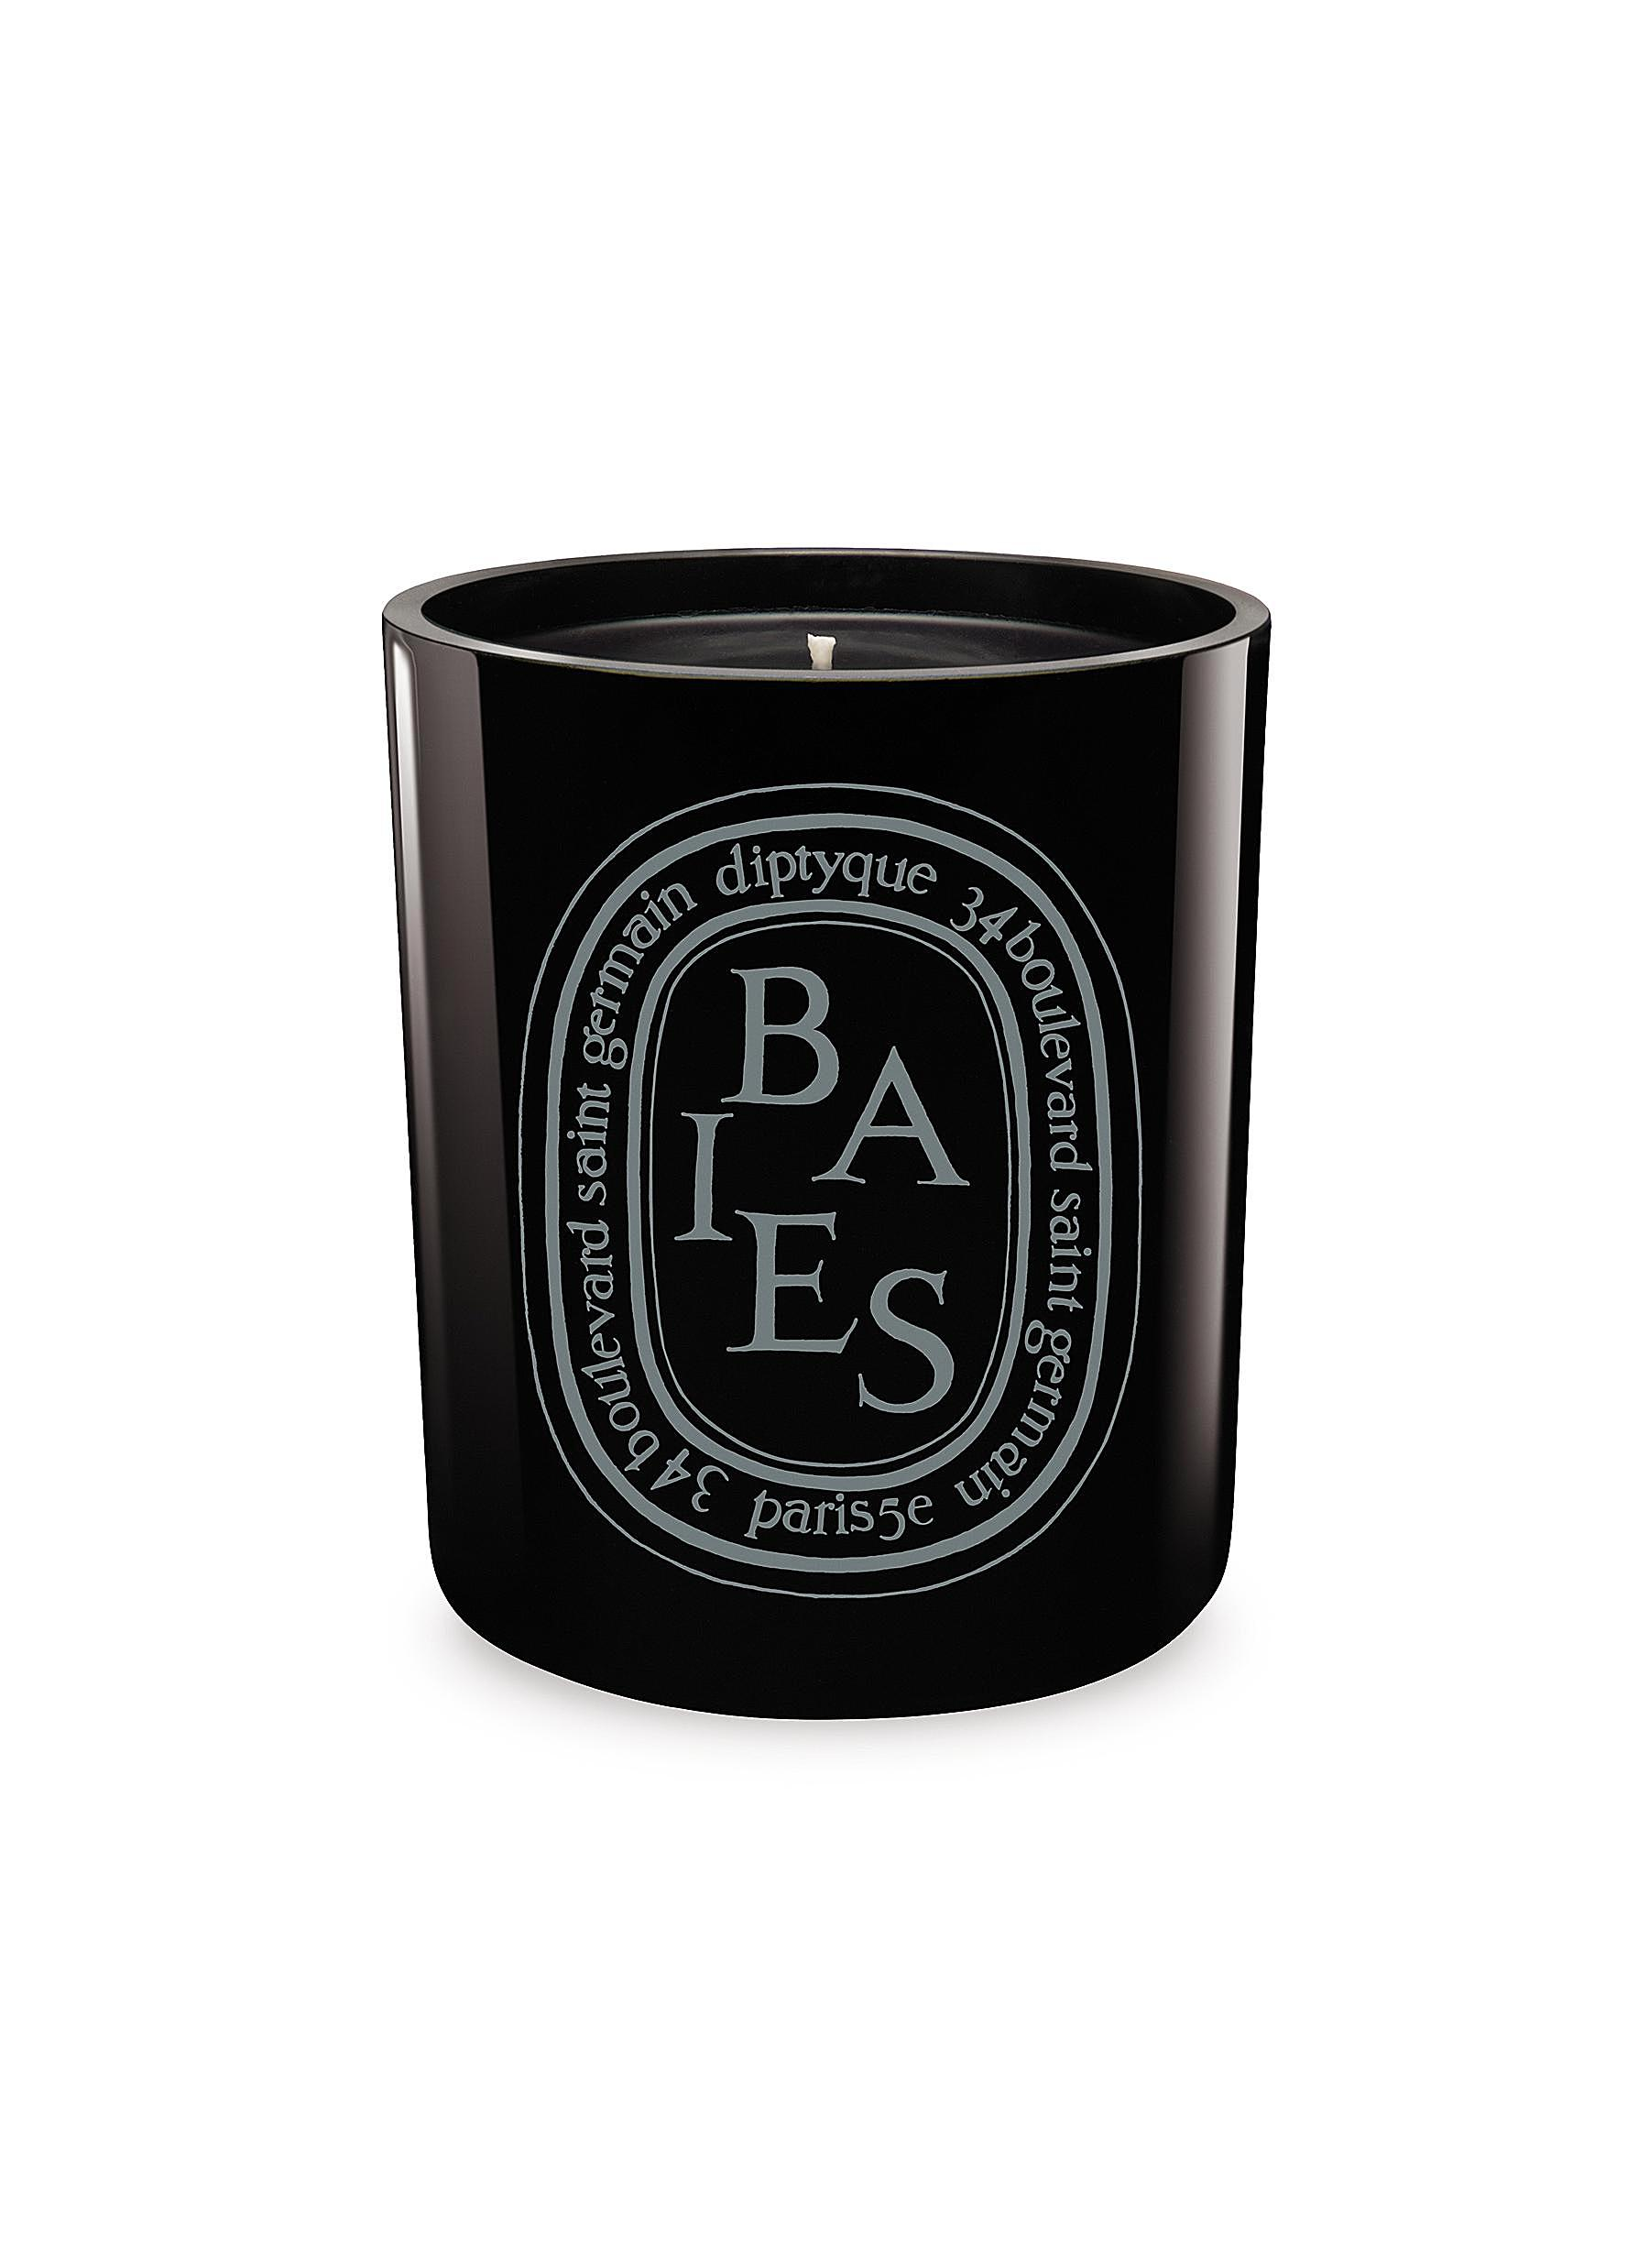 Baies Noires Scented Coloured Candle 300g by diptyque